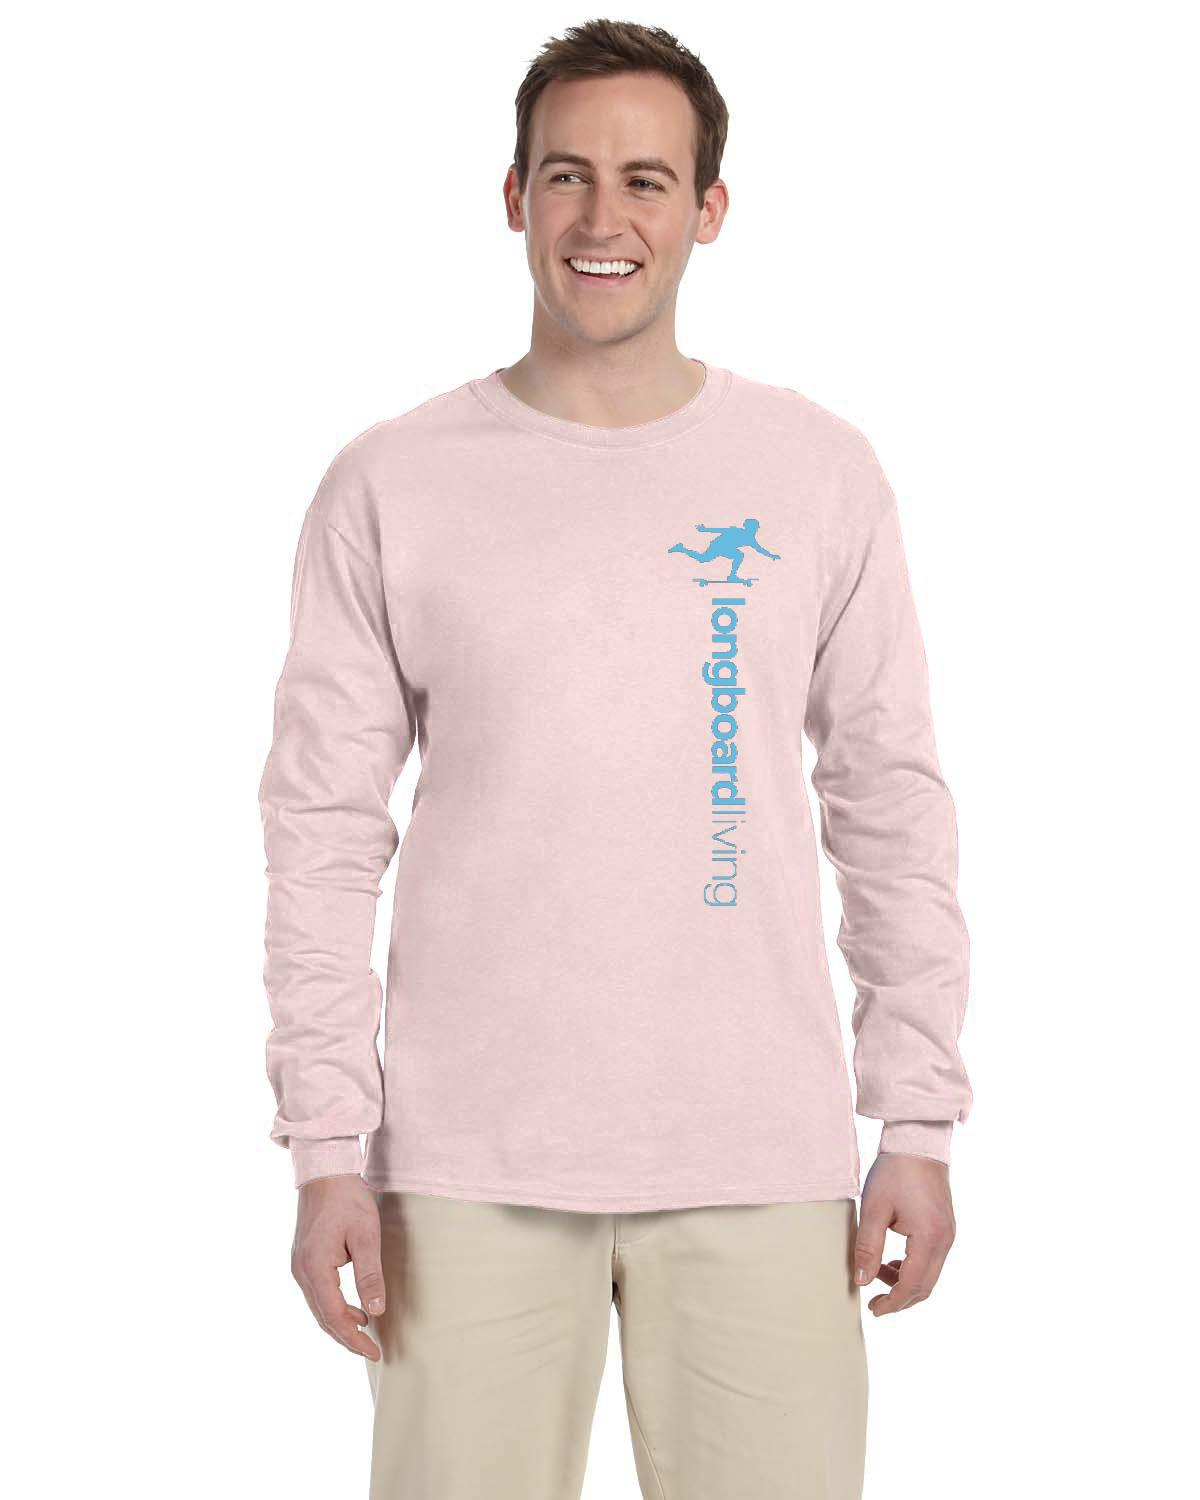 Longboard Living Long Sleeve Shirt - Vertical Blue Print